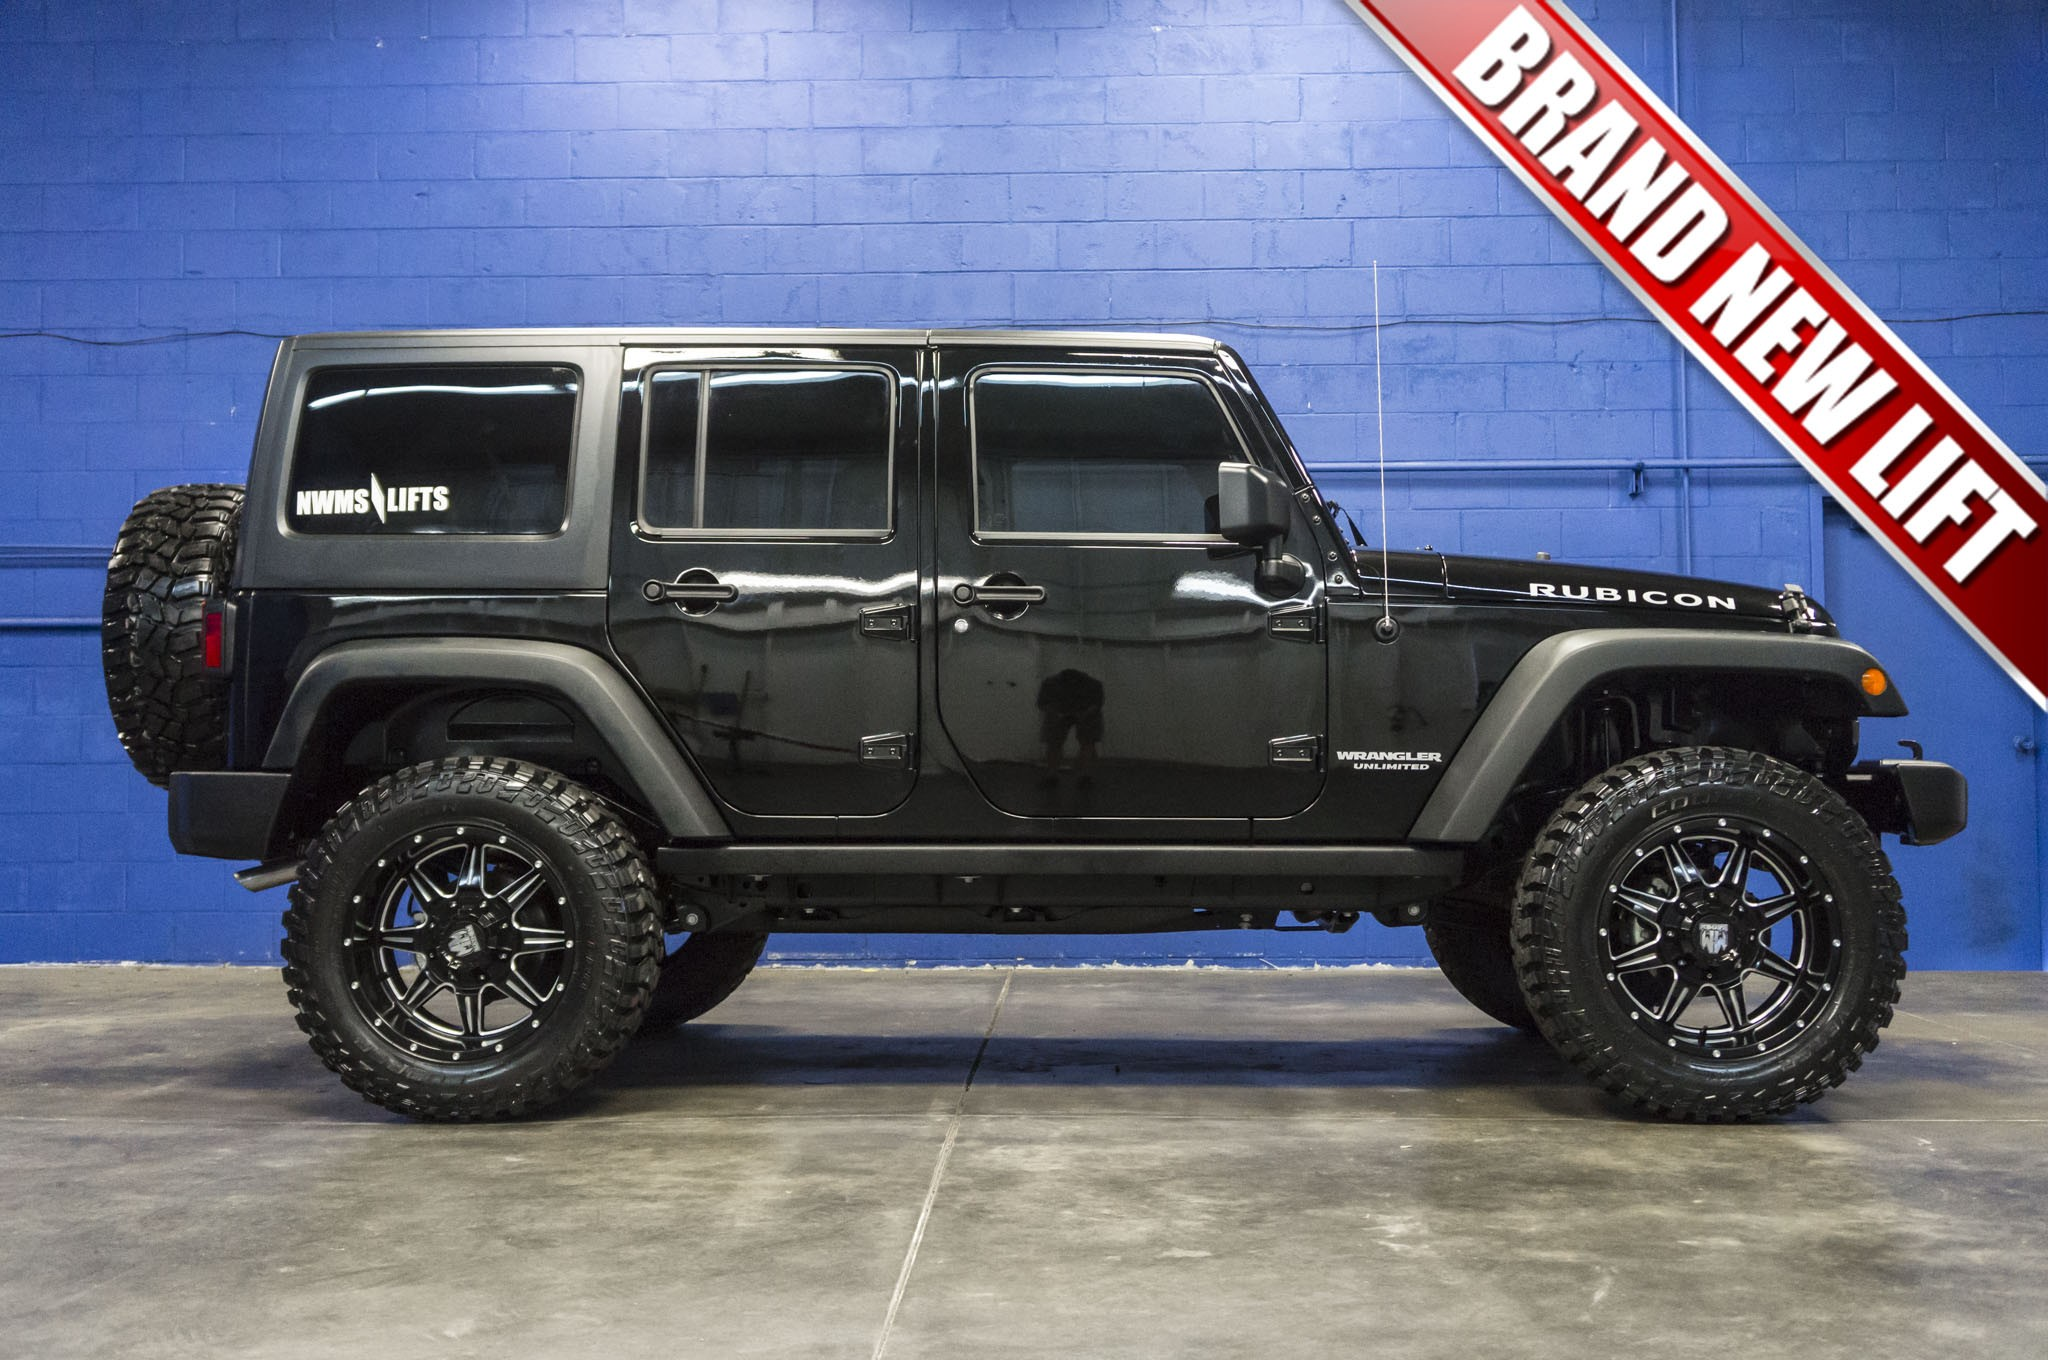 Used Lifted 2015 Jeep Wrangler Unlimited Rubicon 4x4 SUV ...